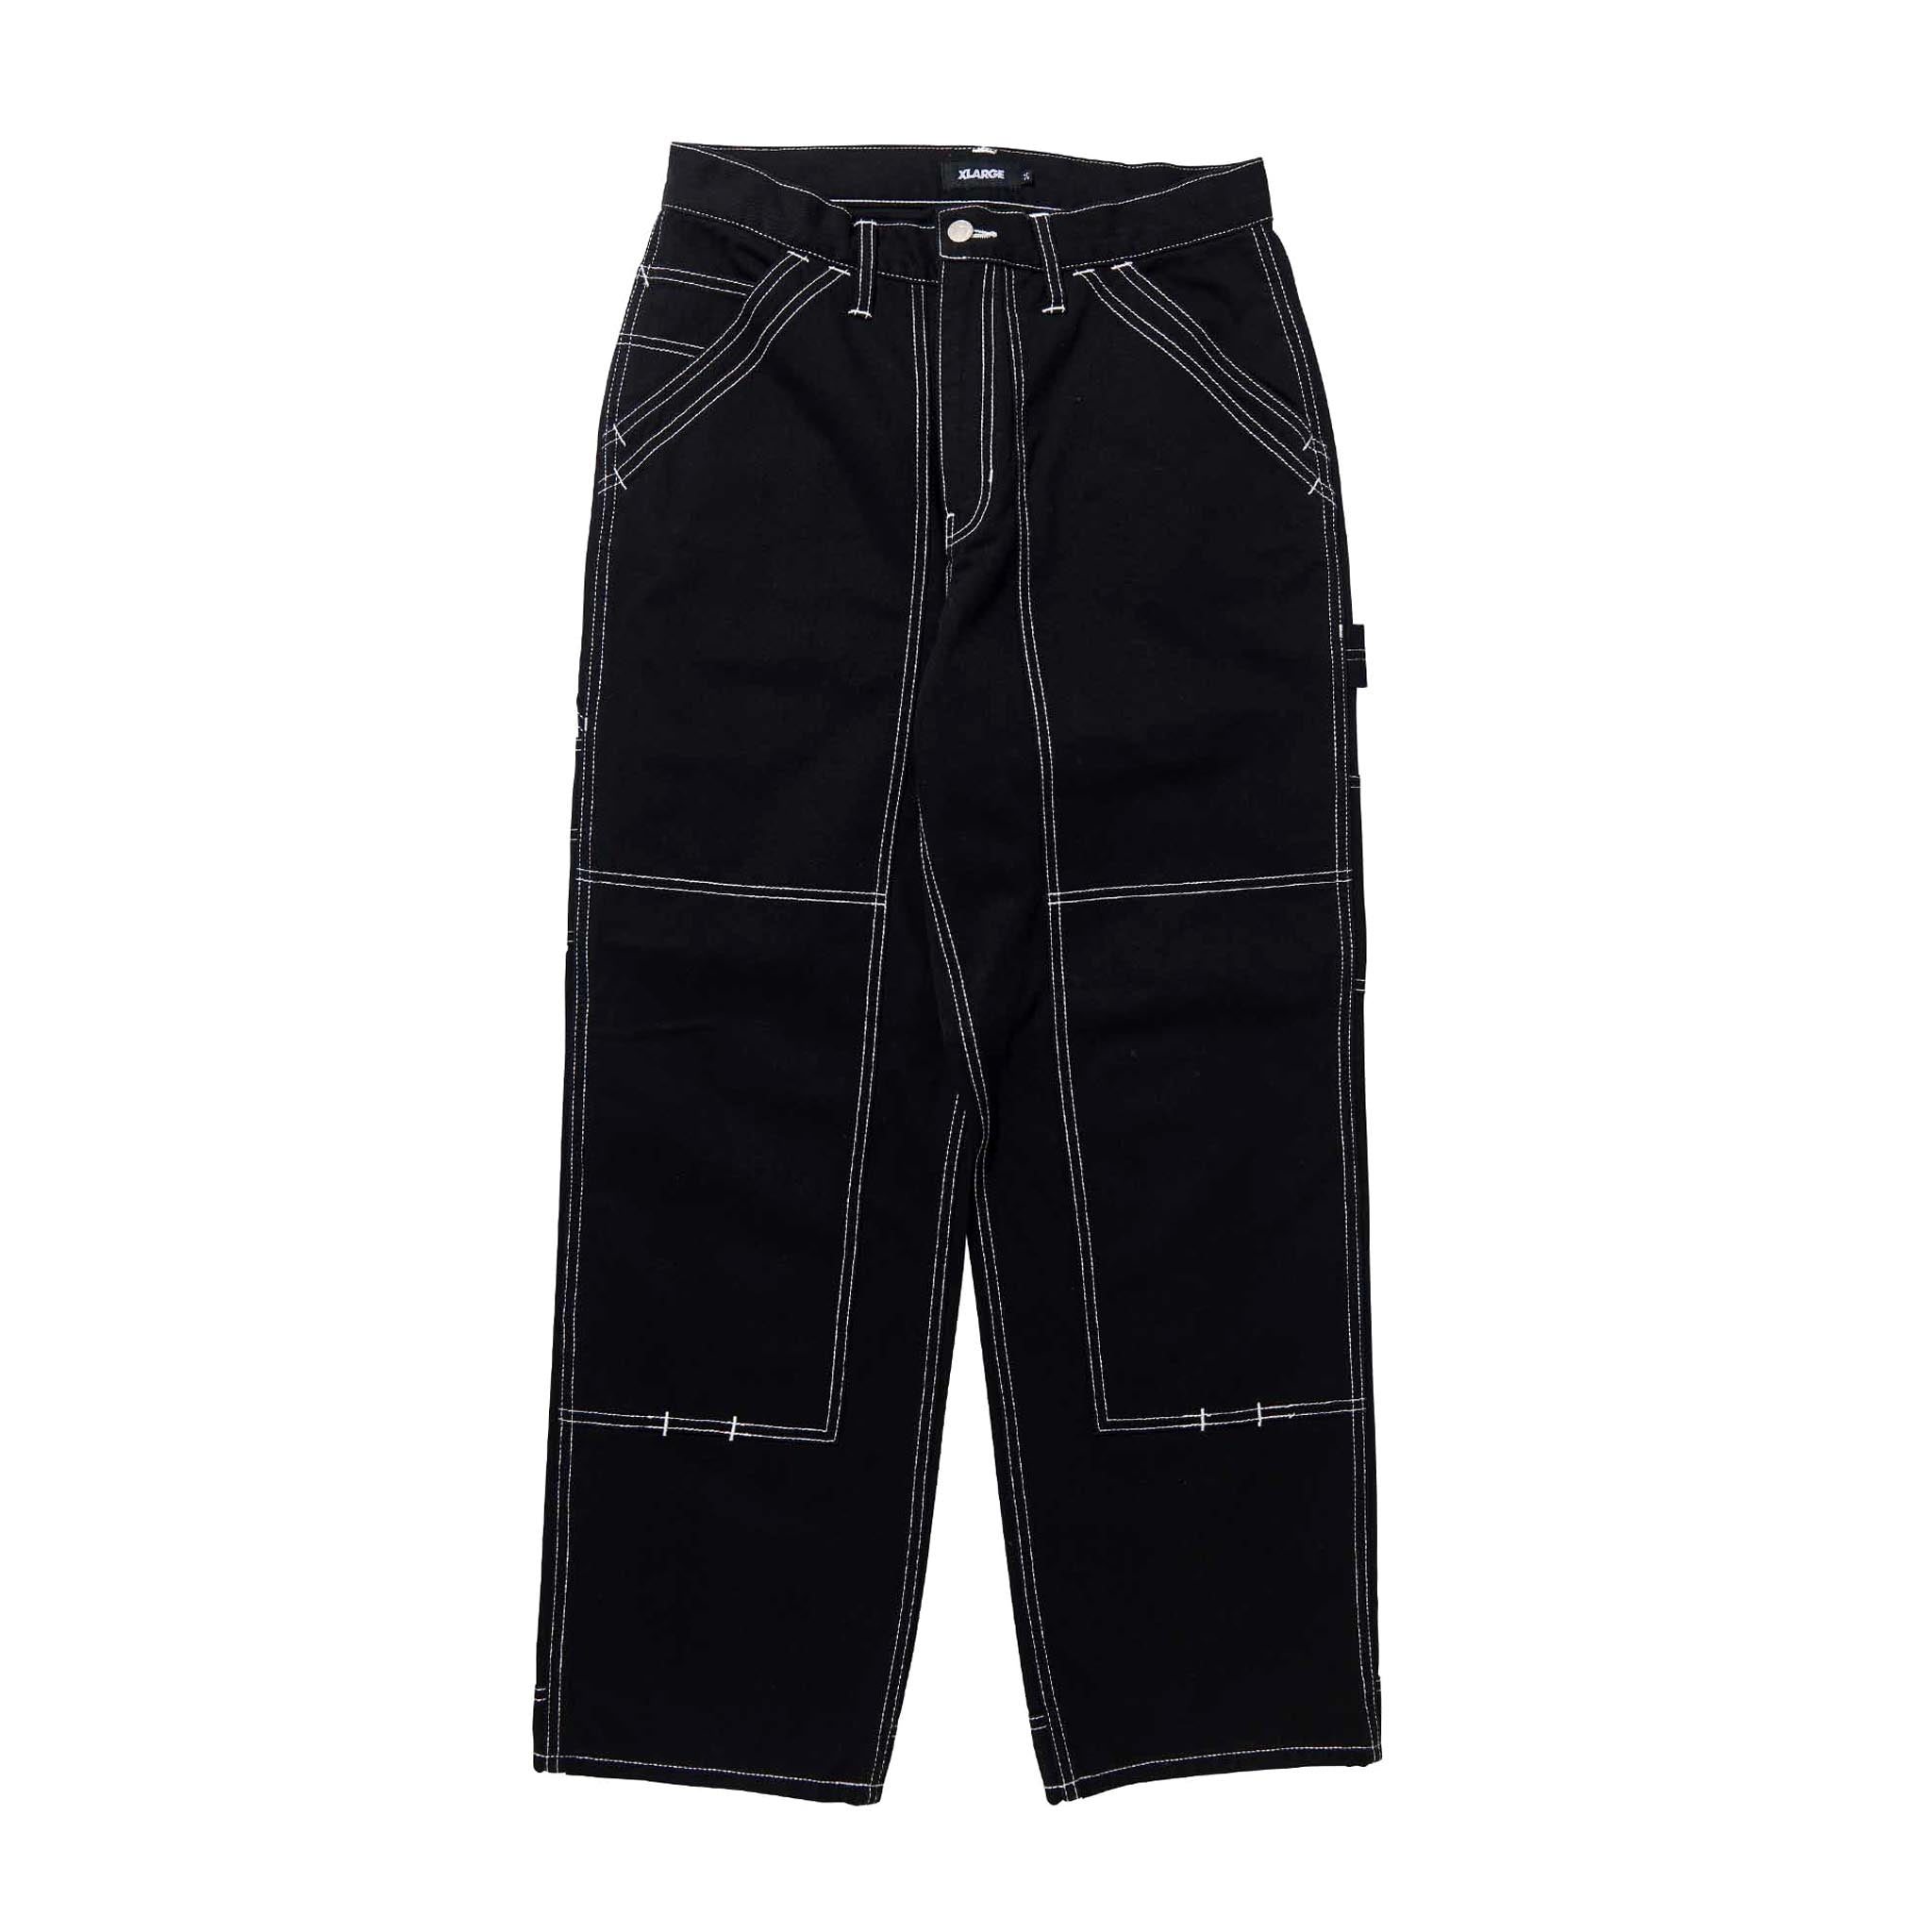 XLARGE Contrast Stitch Work Pants Black